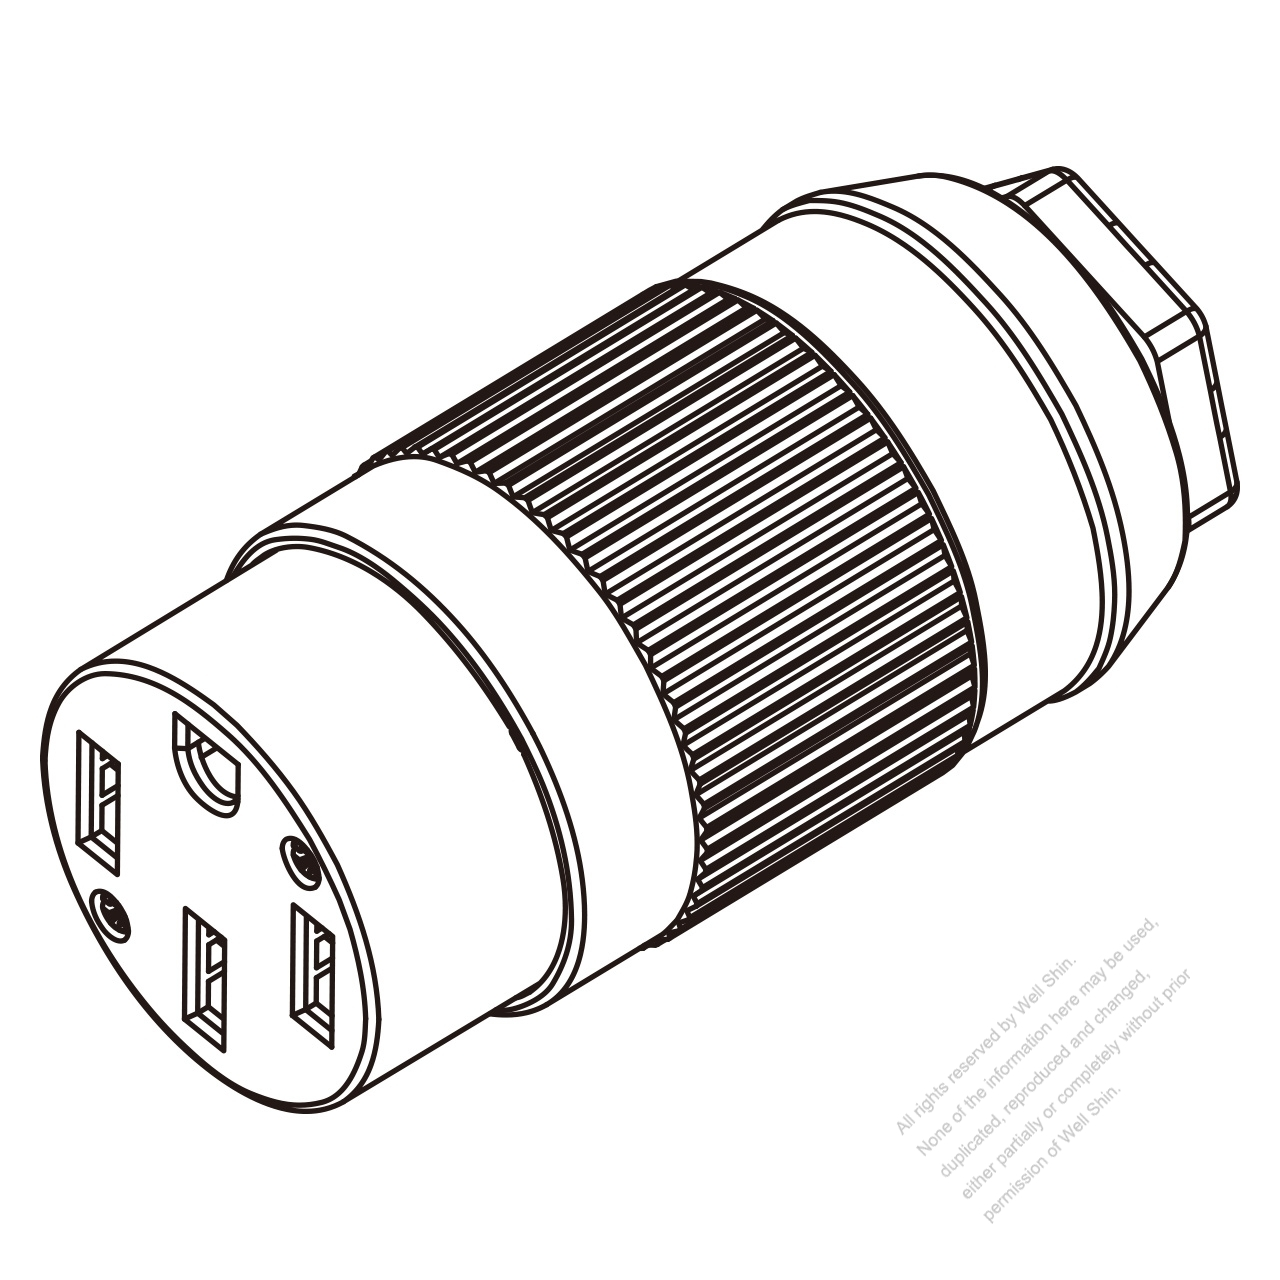 USA/Canada Connector (NEMA 14-50R) 4-Pin 3 P, 4 Wire